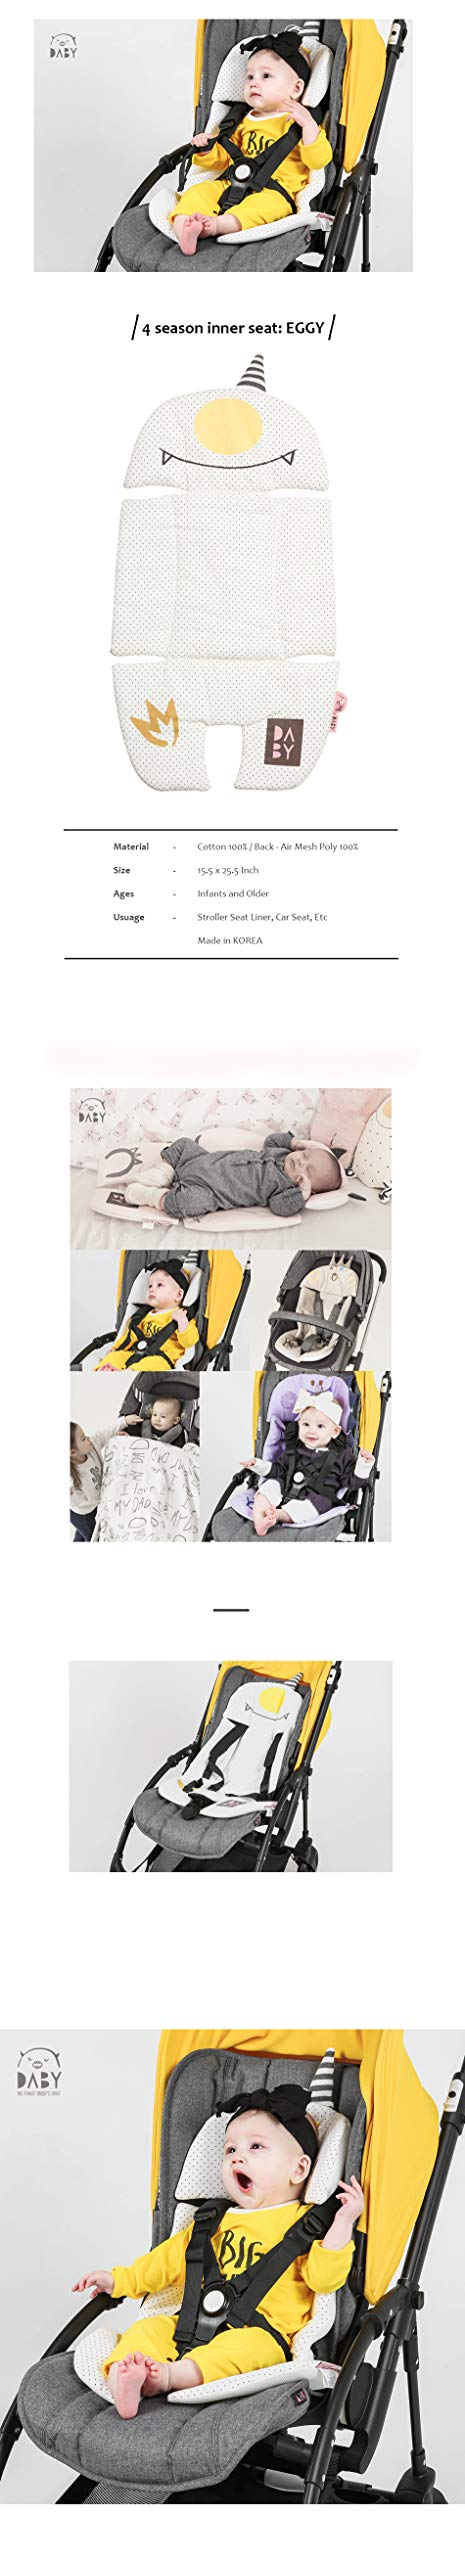 100% Cotton/Breathable Cover Air Mesh Cool Seat Pad/Cushion/Liner for Stroller and Car Seat (Monster Character Design) (EGGY) by Daby Korea (Image #2)